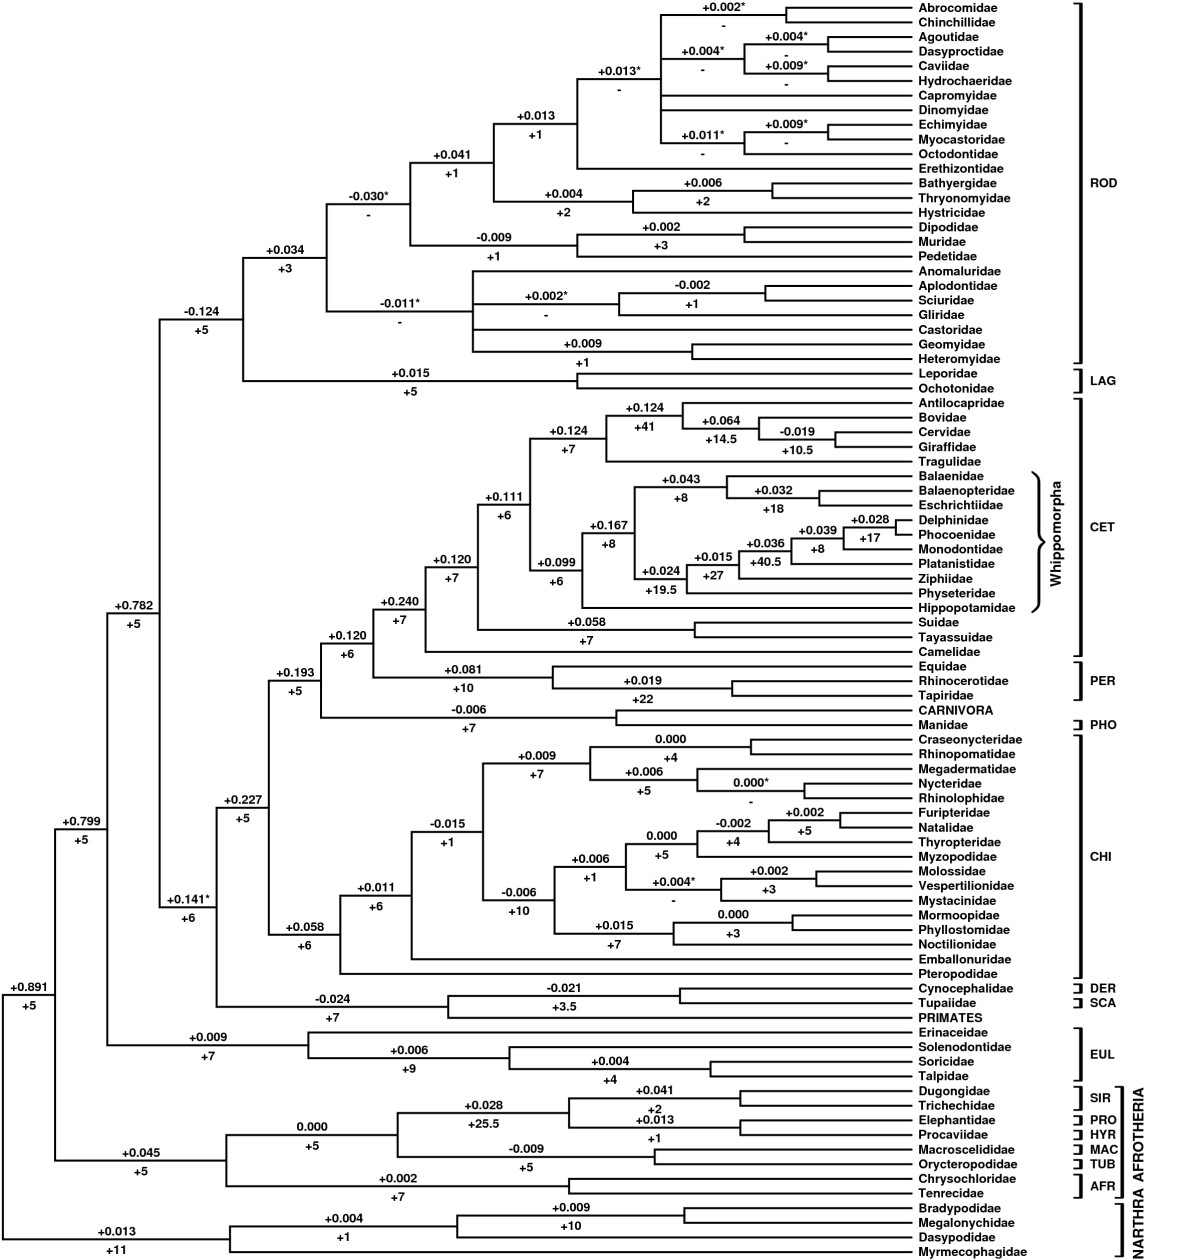 http://static-content.springer.com/image/art%3A10.1186%2F1471-2148-6-93/MediaObjects/12862_2006_Article_278_Fig2_HTML.jpg